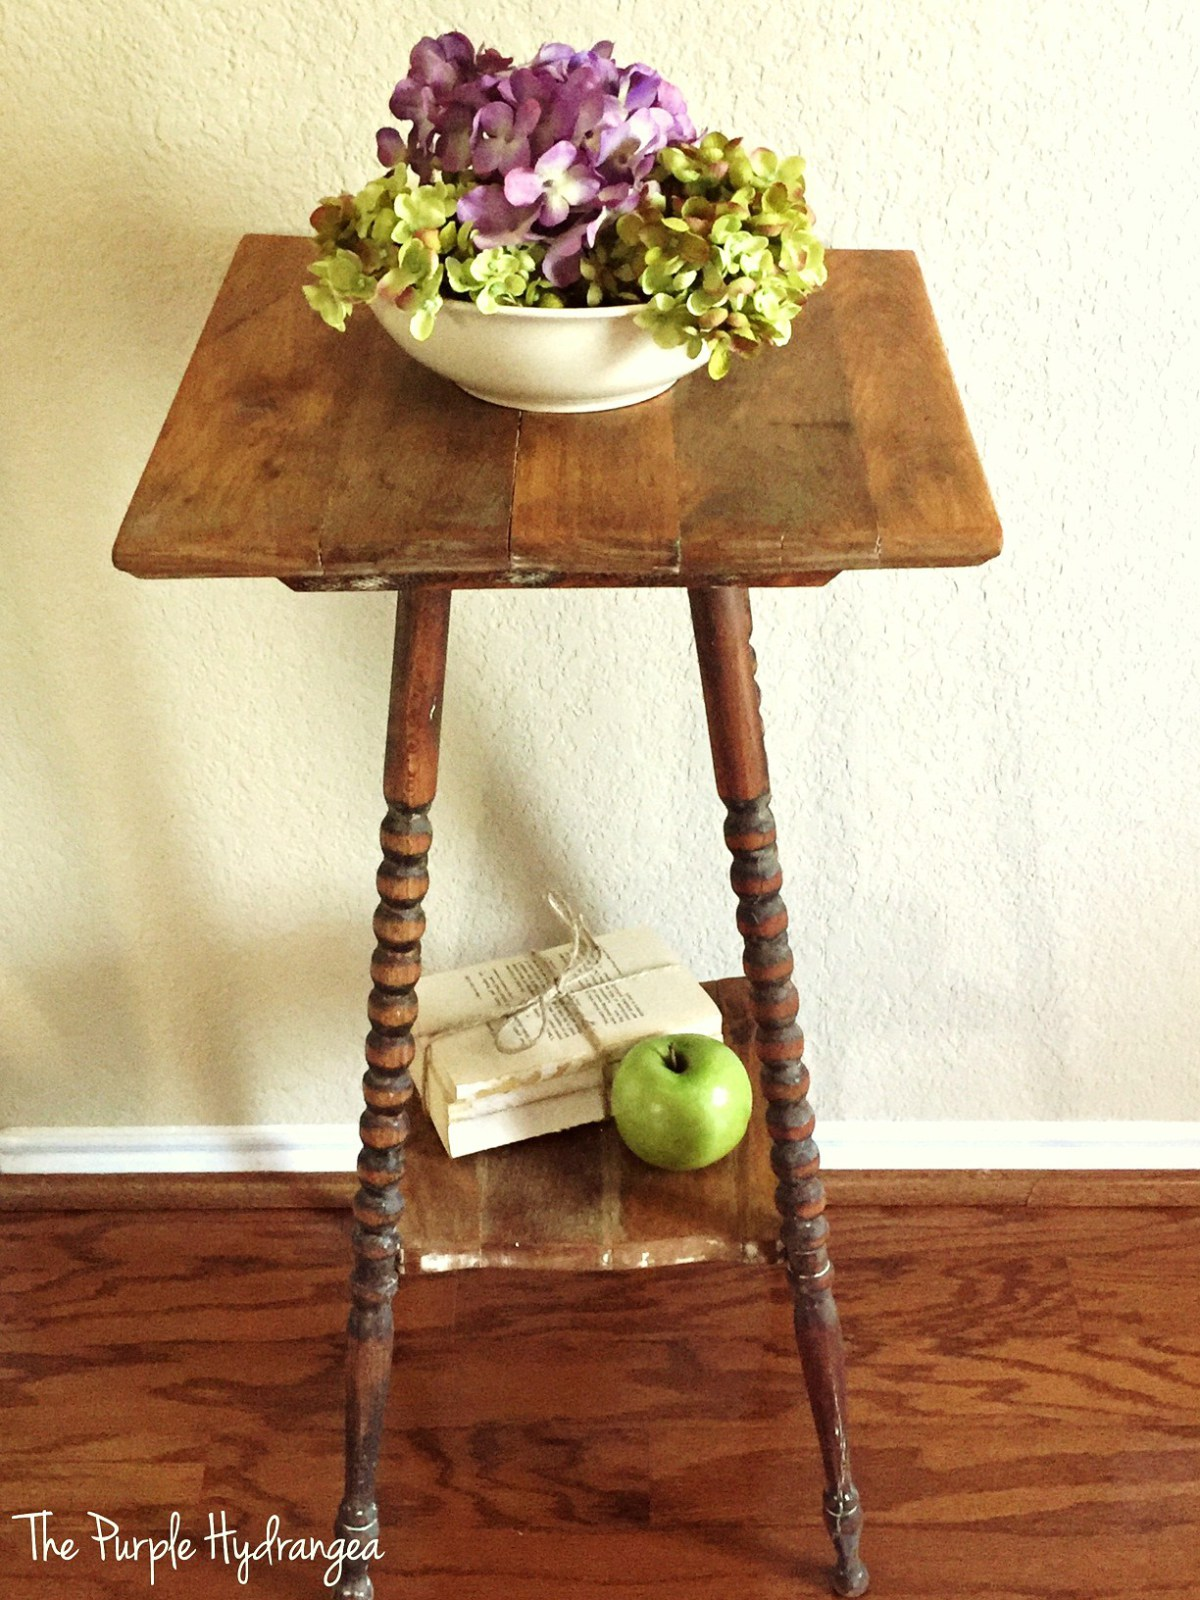 Spindle Leg Table Makeover by Lisa at The Purple Hydrangea